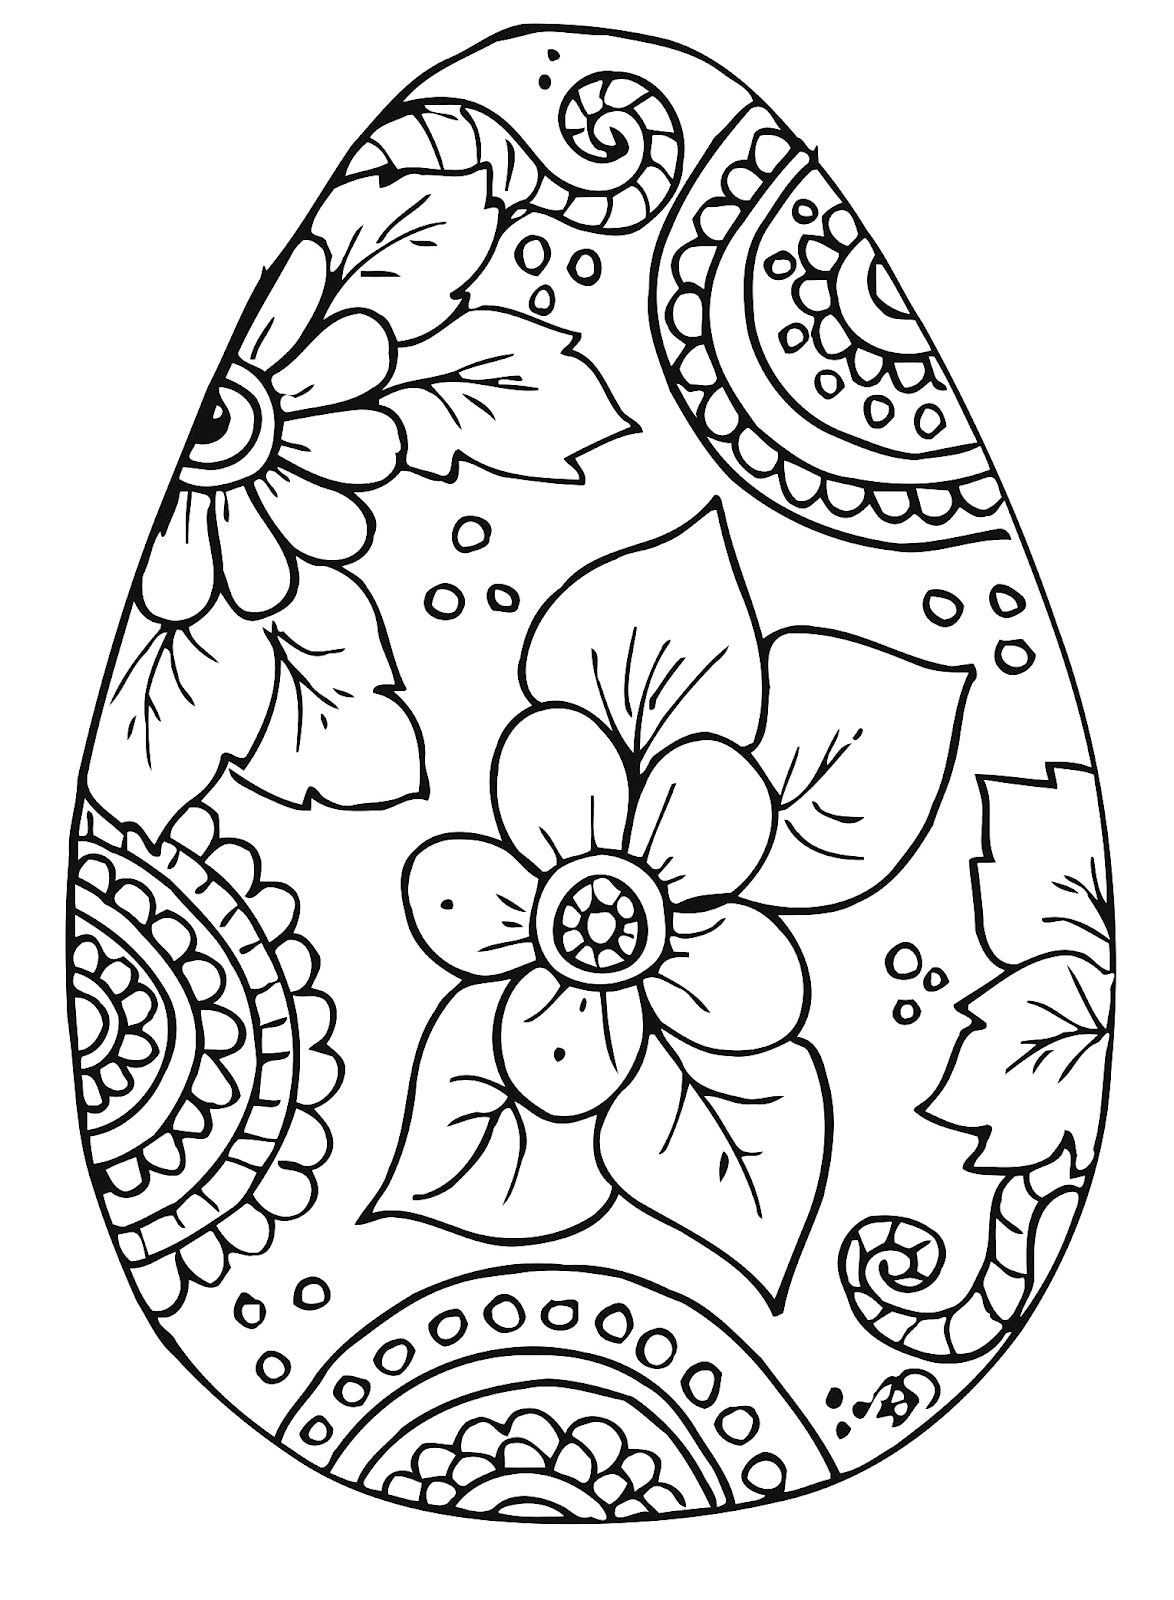 Easter Coloring 10 Cool Free Printable Easter Coloring Pages for Gallery Of Easter Coloring Pages for Kids Crazy Little Projects Printable